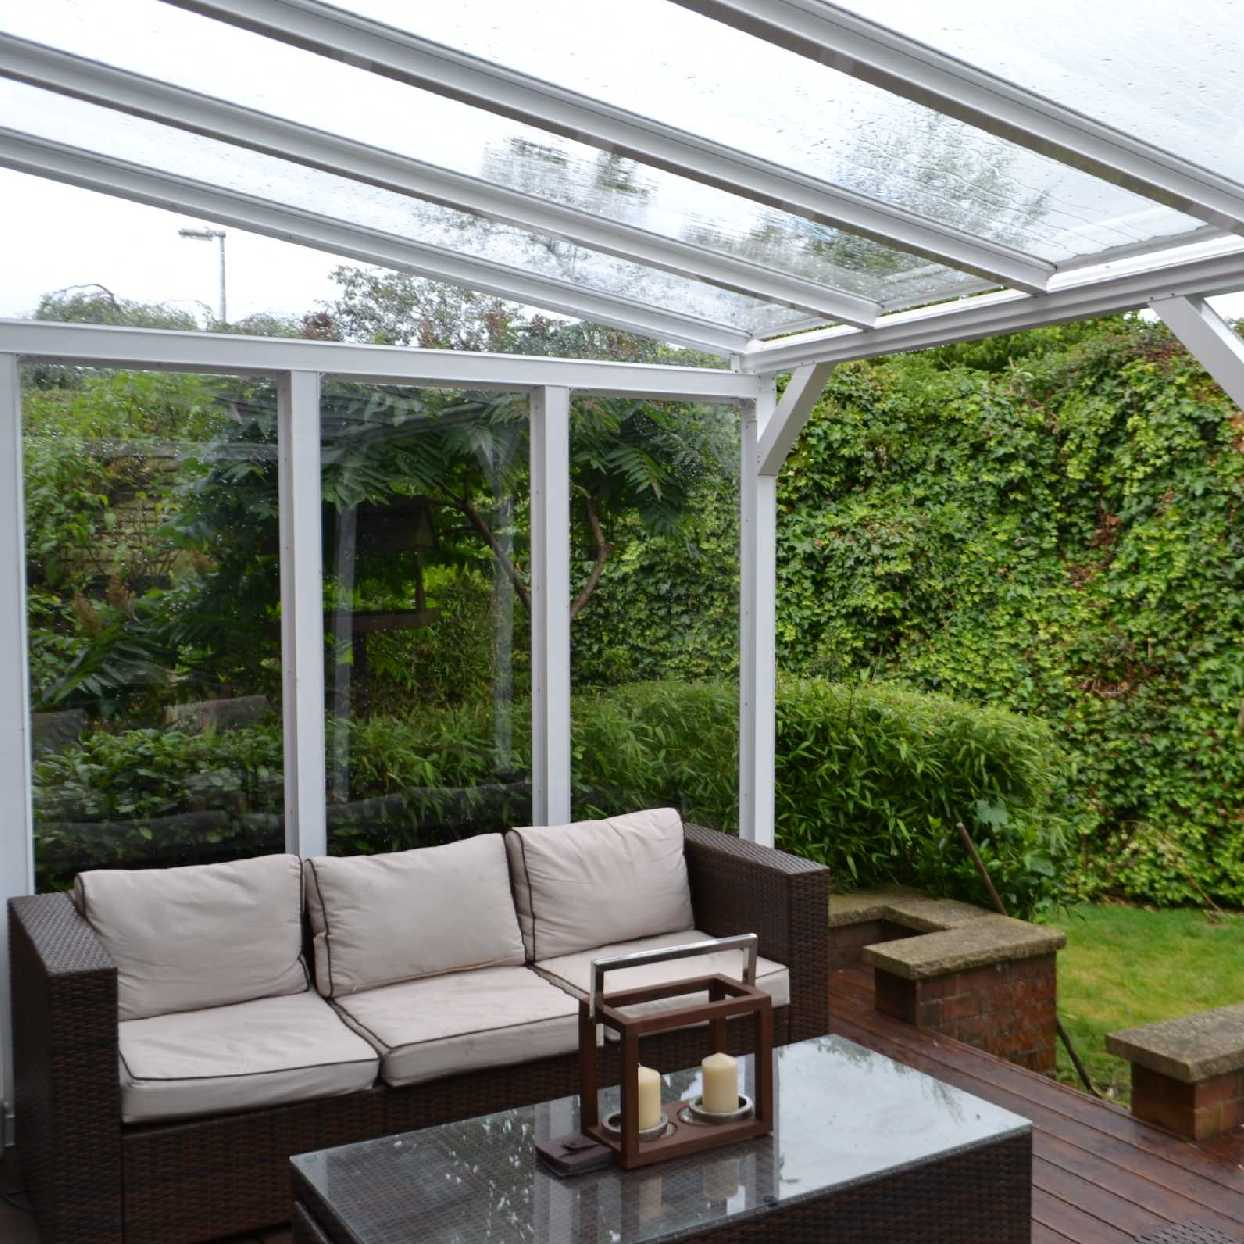 Great selection of Omega Smart Lean-To Canopy with 16mm Polycarbonate Glazing - 2.1m (W) x 2.5m (P), (2) Supporting Posts